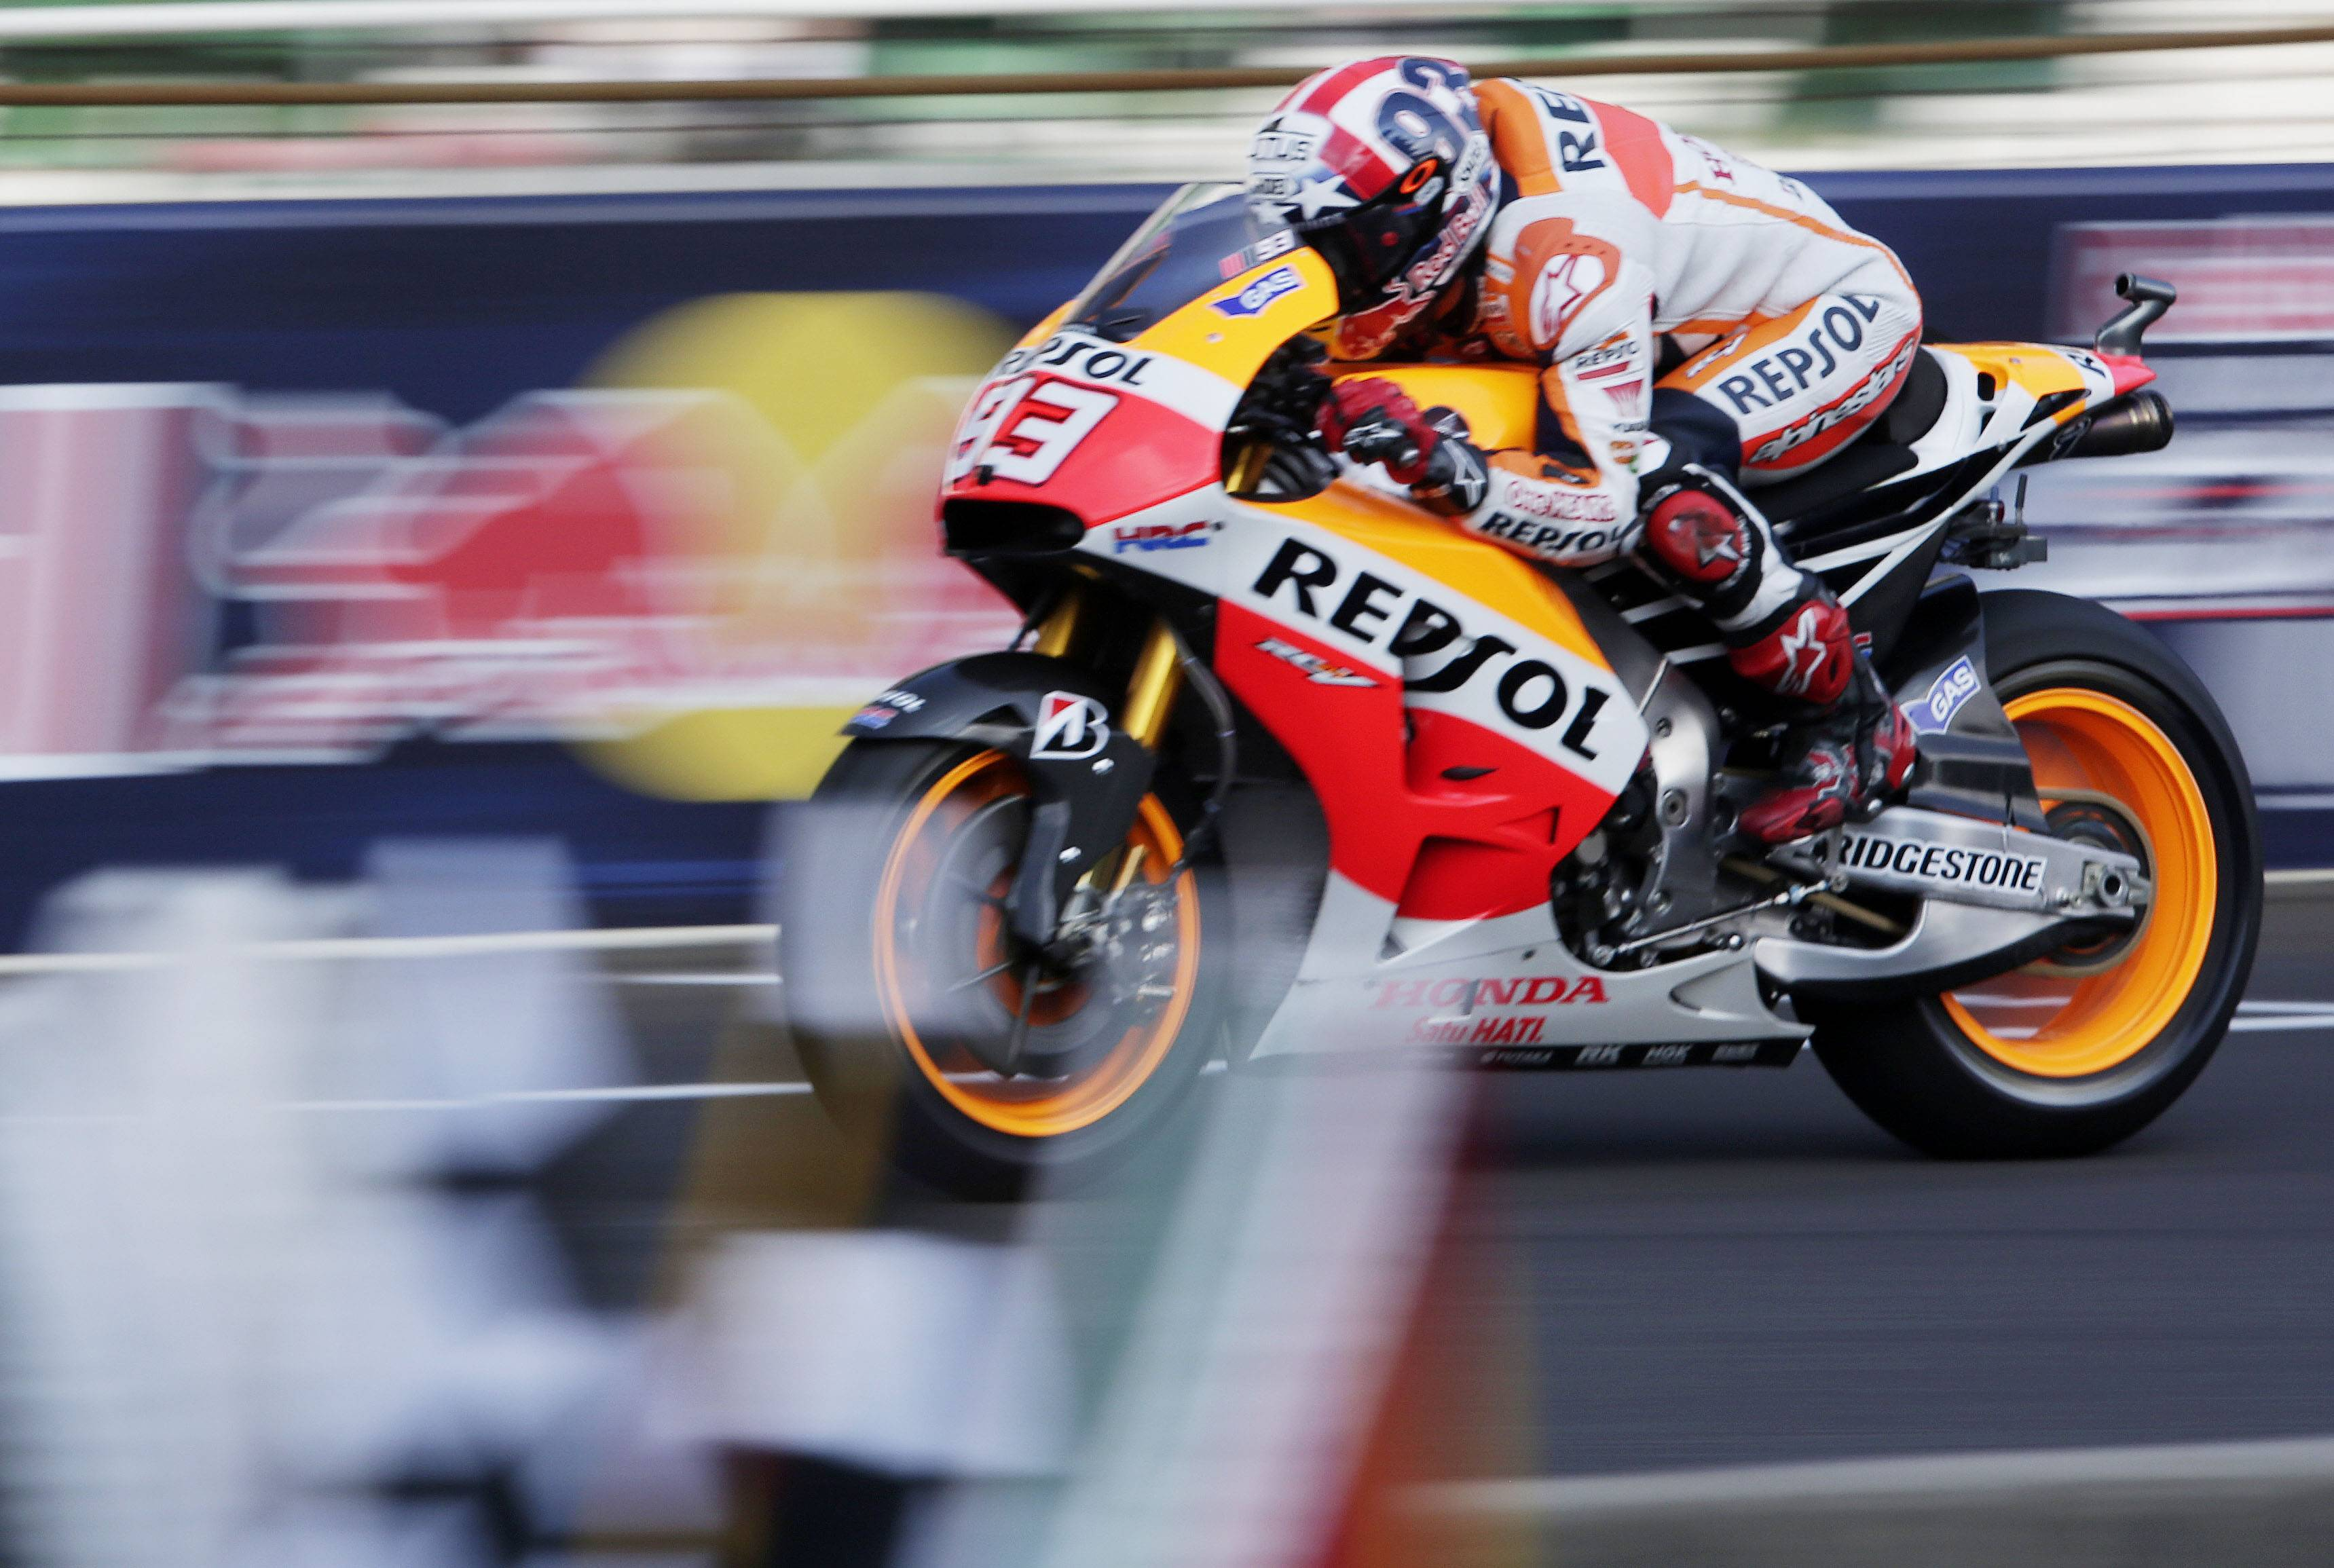 Marc Marquez, of Spain, rides down the front straight during the third practice for the Indianapolis Moto GP motorcycle race at the Indianapolis Motor Speedway in Indianapolis, Saturday, Aug. 9, 2014.